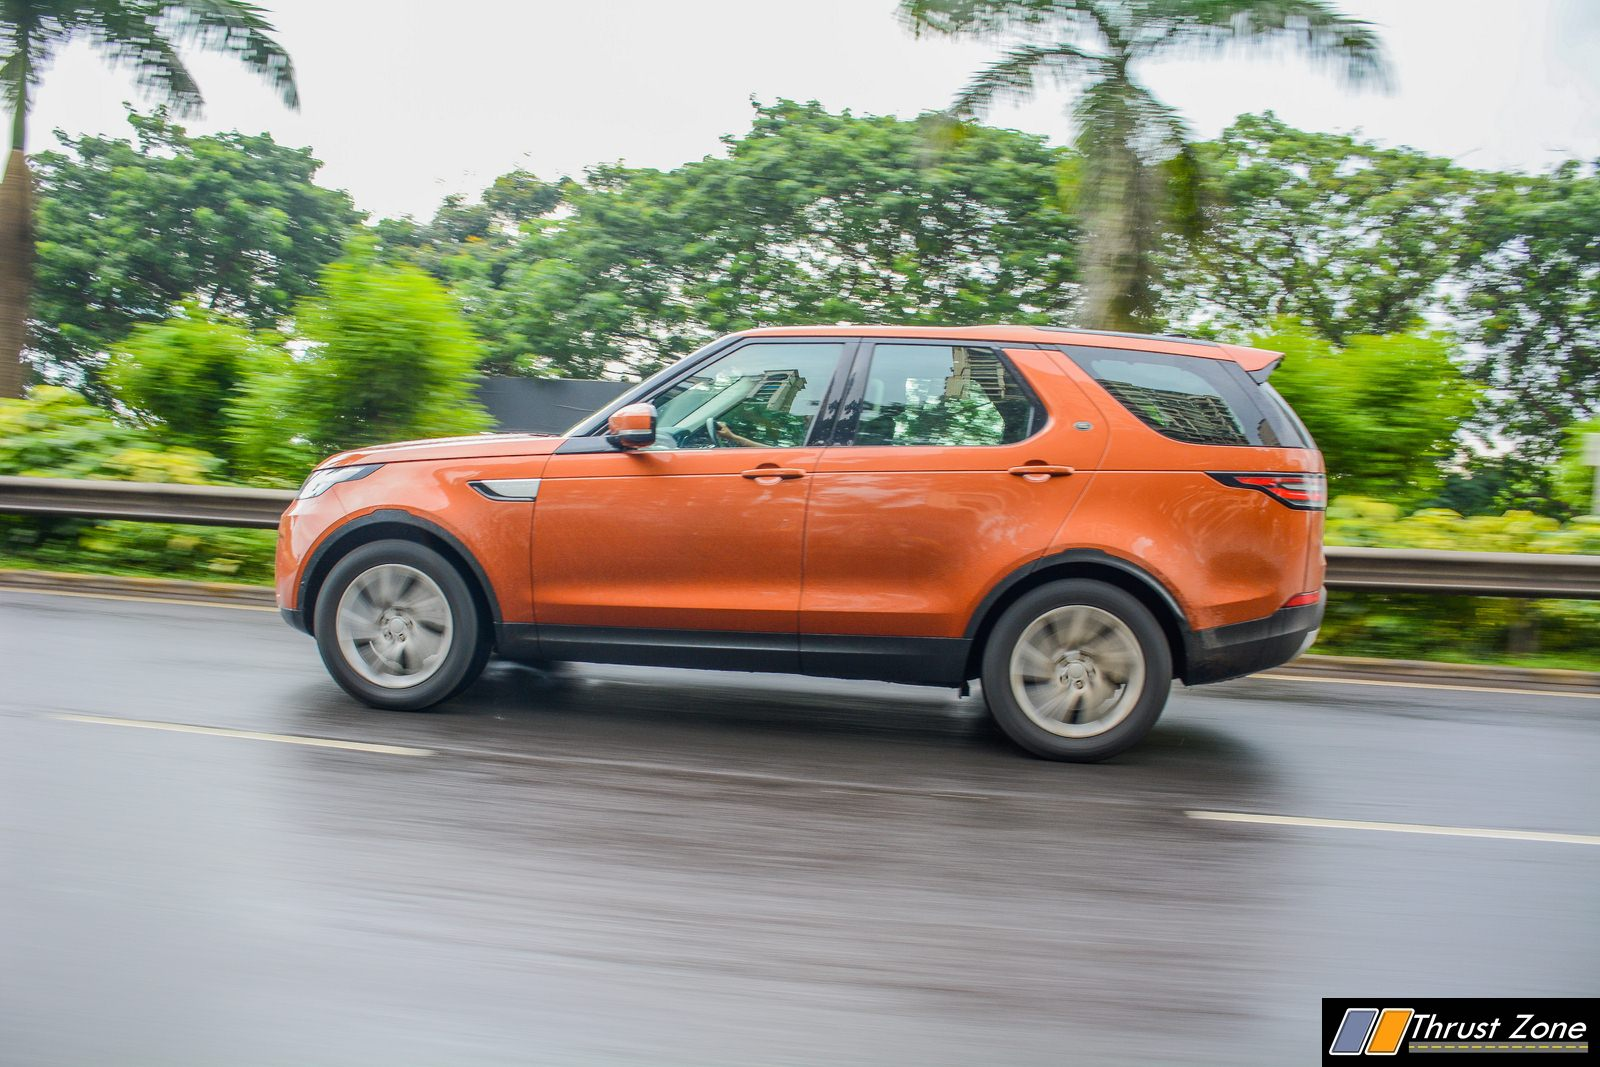 2018-Land-Rover-Discovery-Petrol-India-Review-19